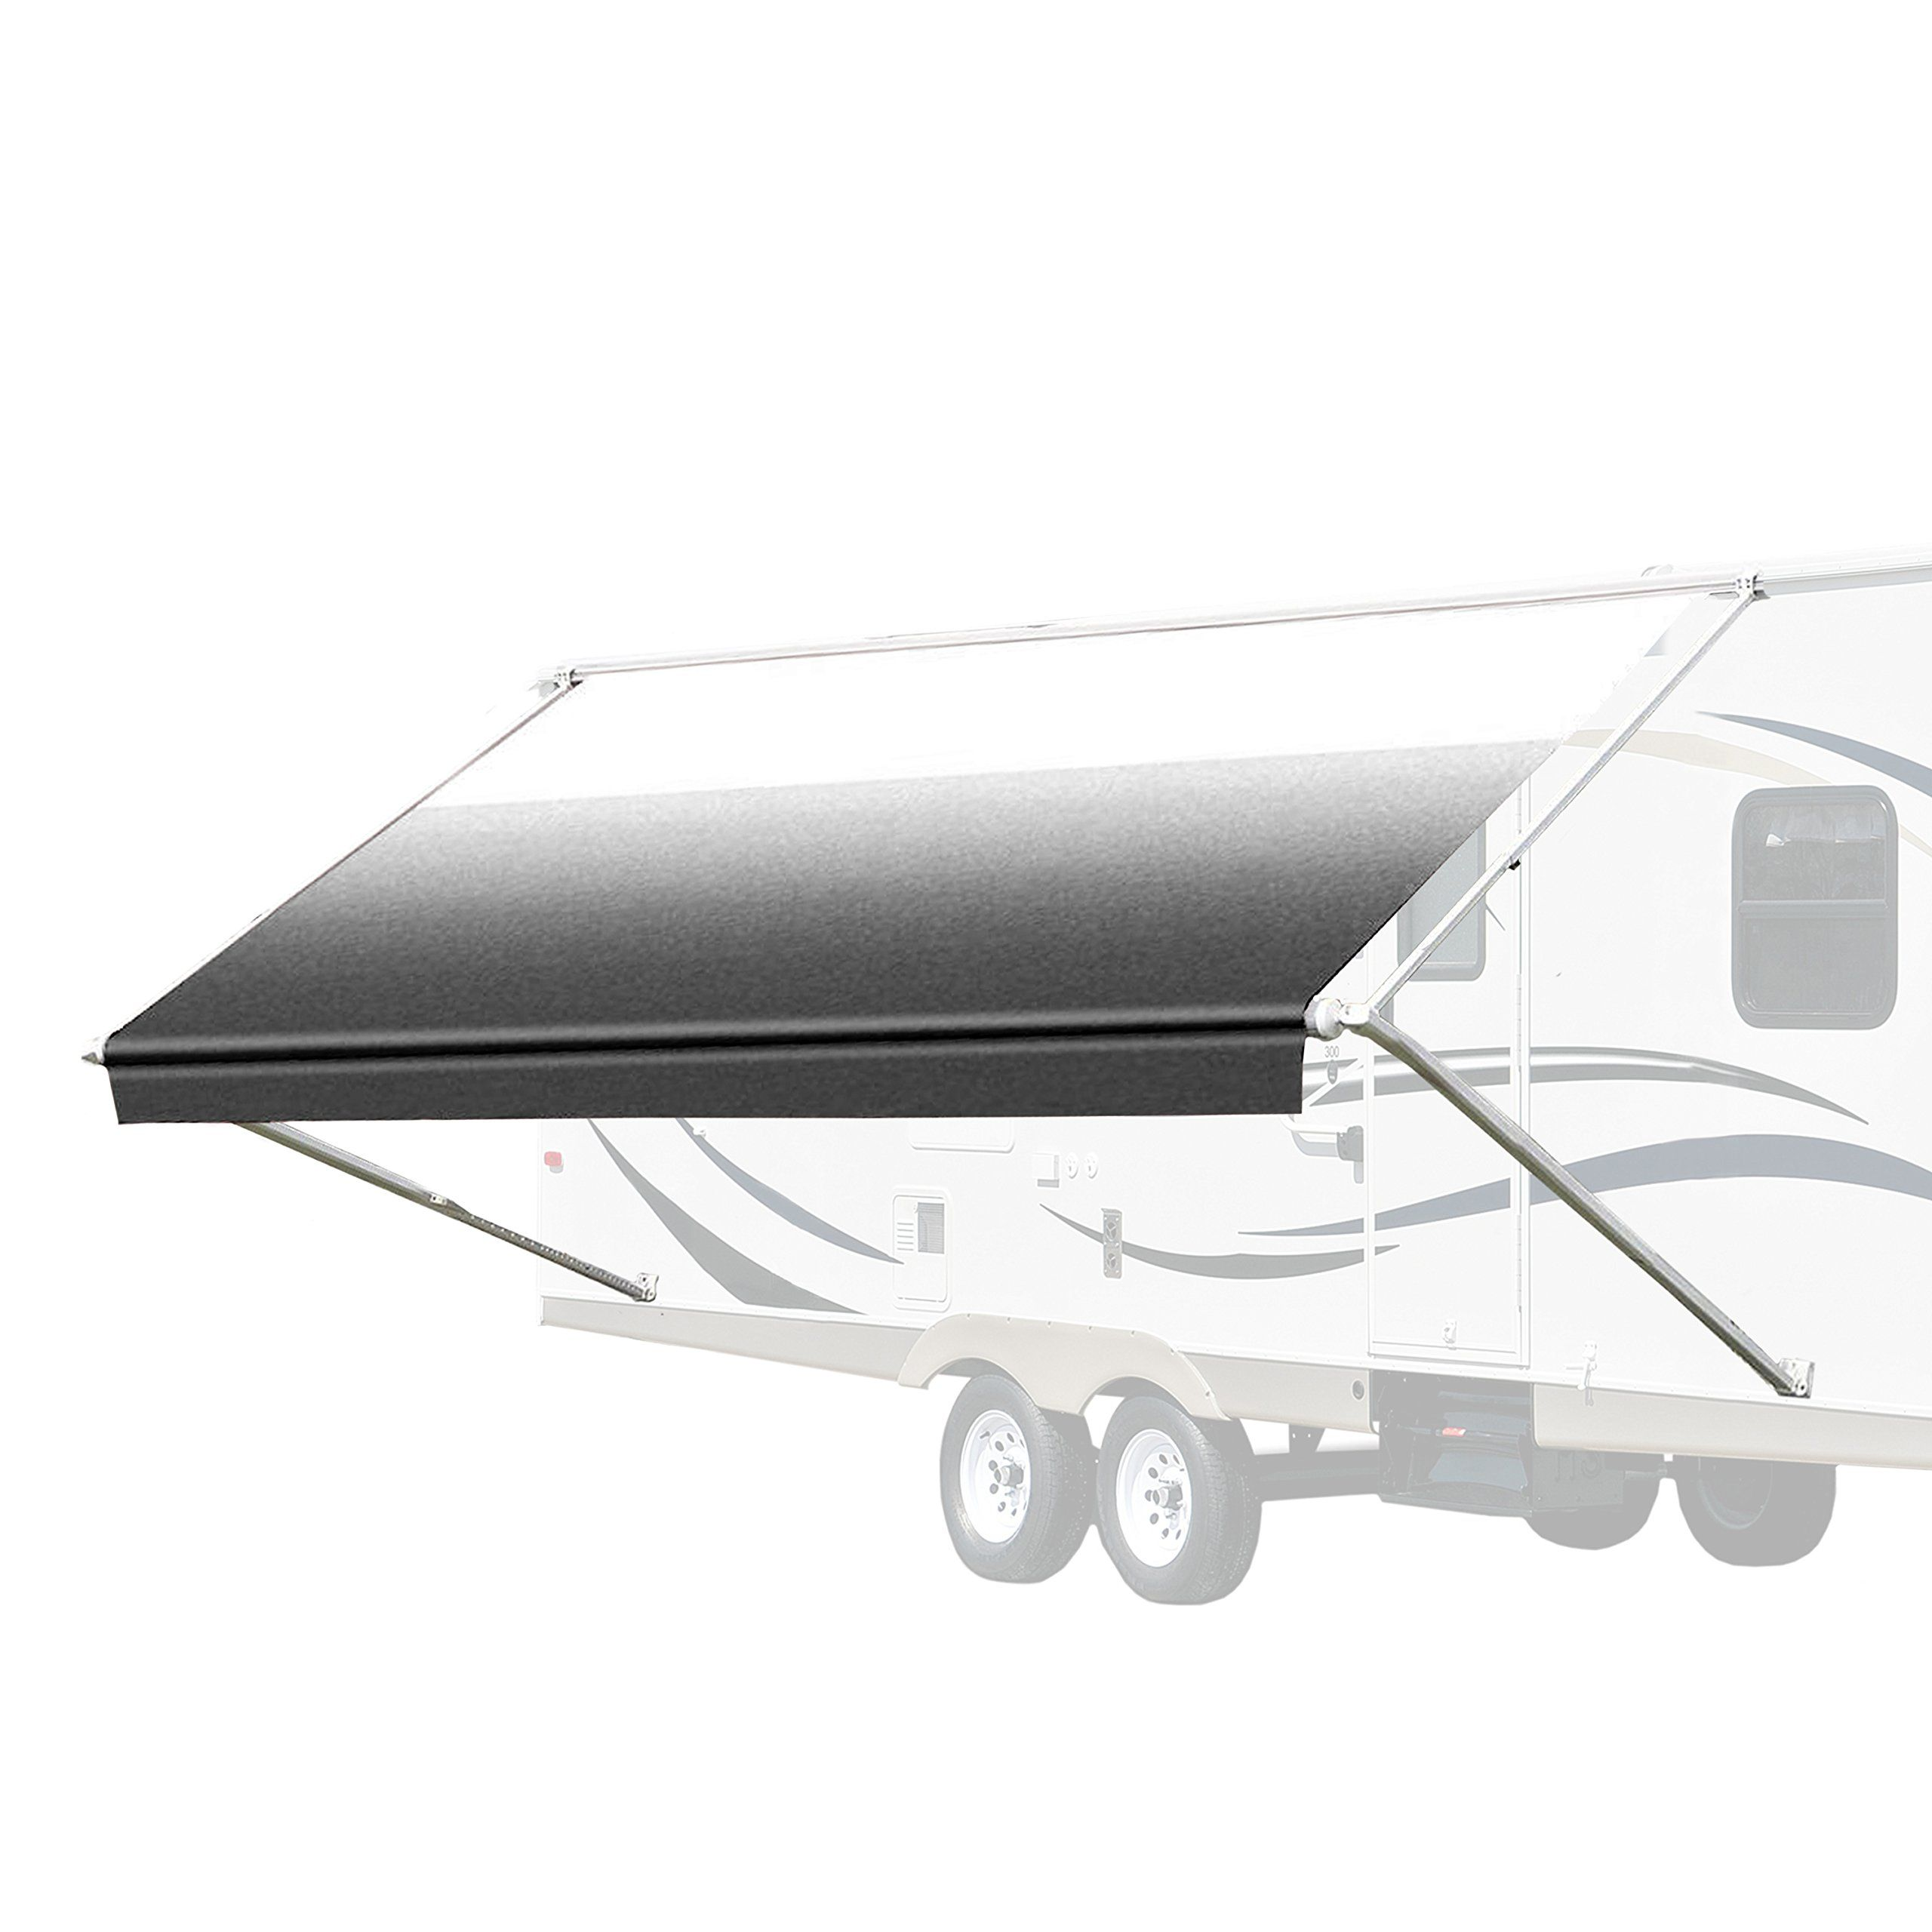 Aleko 16x8 Feet Retractable Rv Or Home Patio Canopy Awning White To Black Fade Color Read More Reviews Of The Product Patio Awning Patio Canopy Hotel Canopy